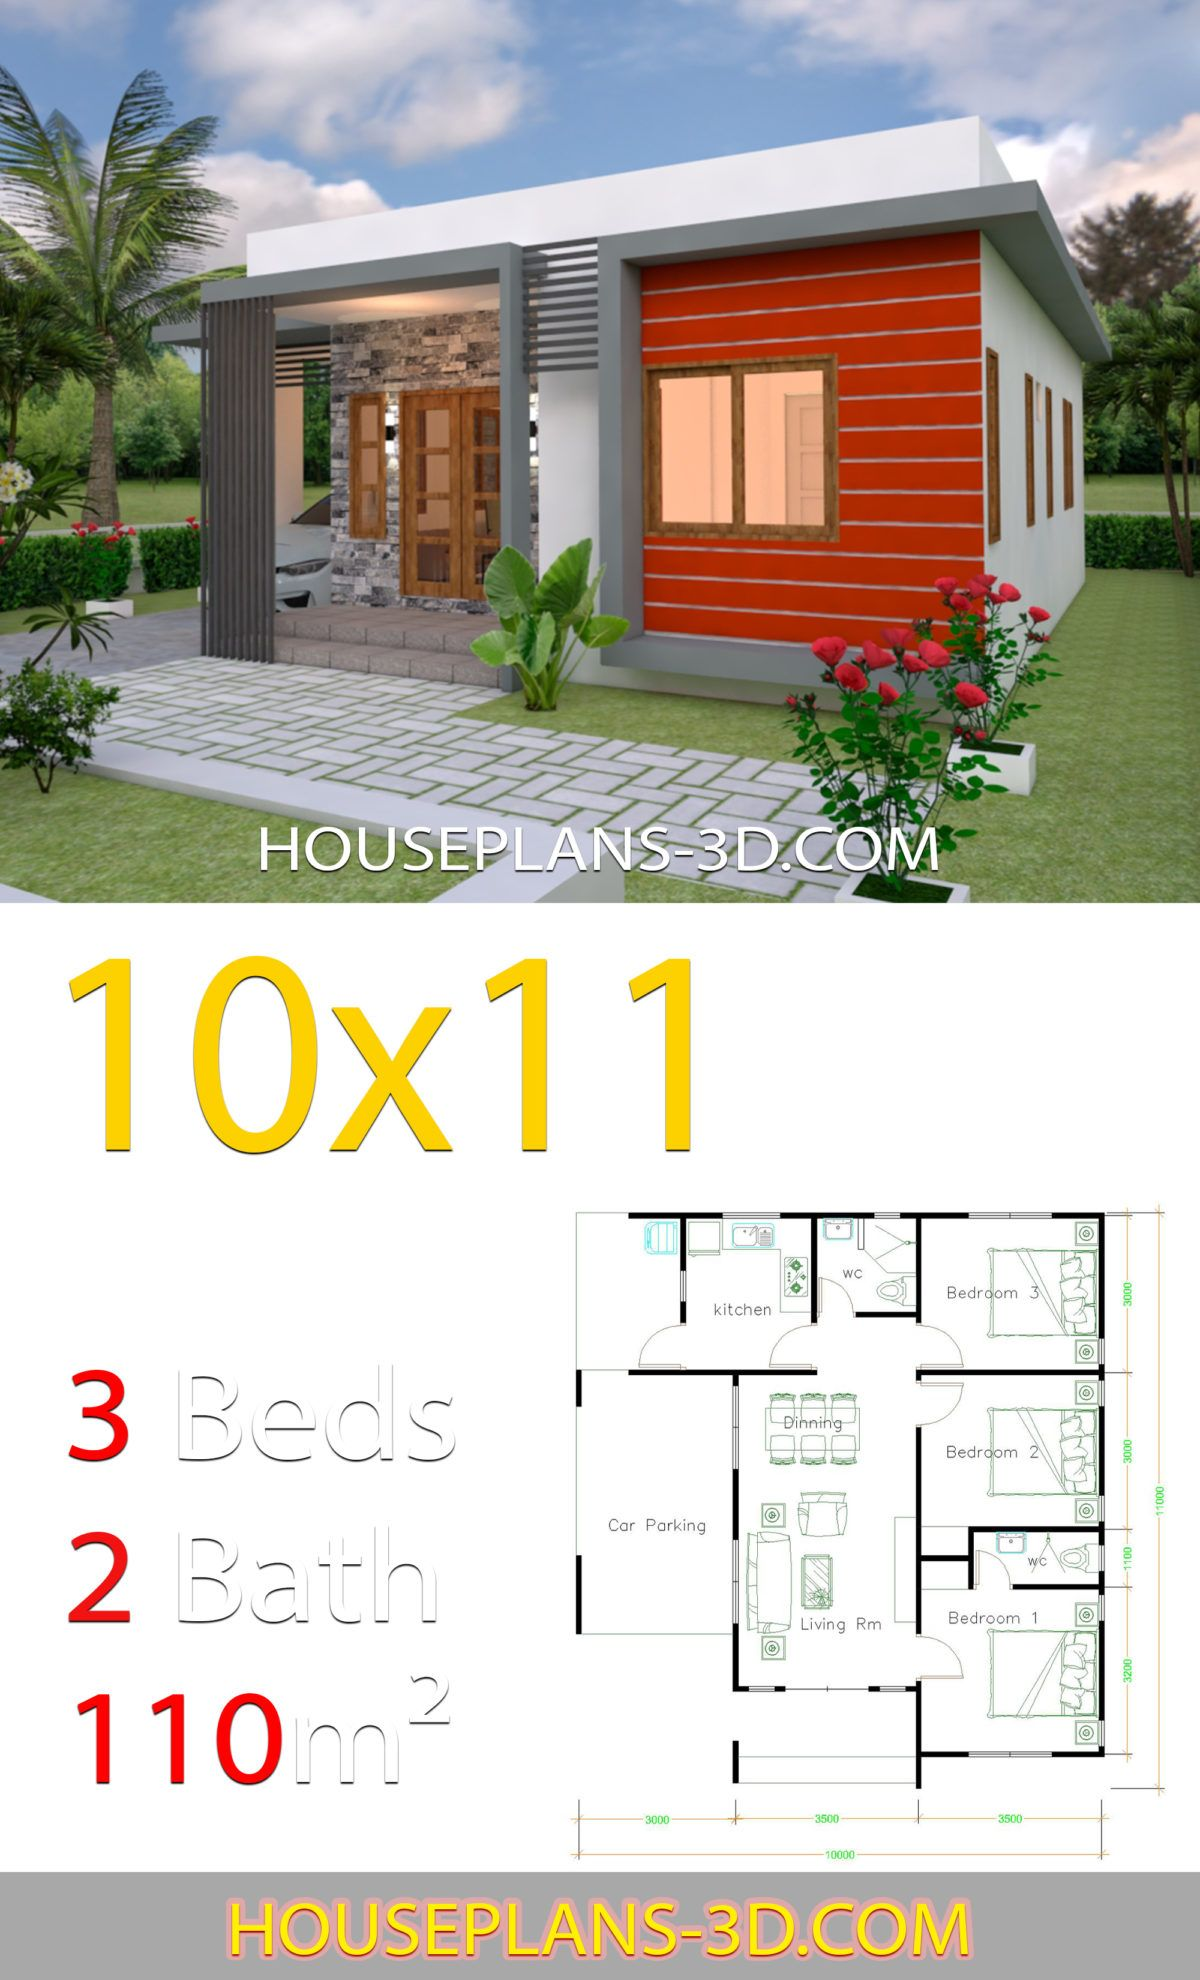 House Design 10x11 With 3 Bedrooms Terrace Roof House Plans 3d Affordable House Plans Beautiful House Plans Model House Plan